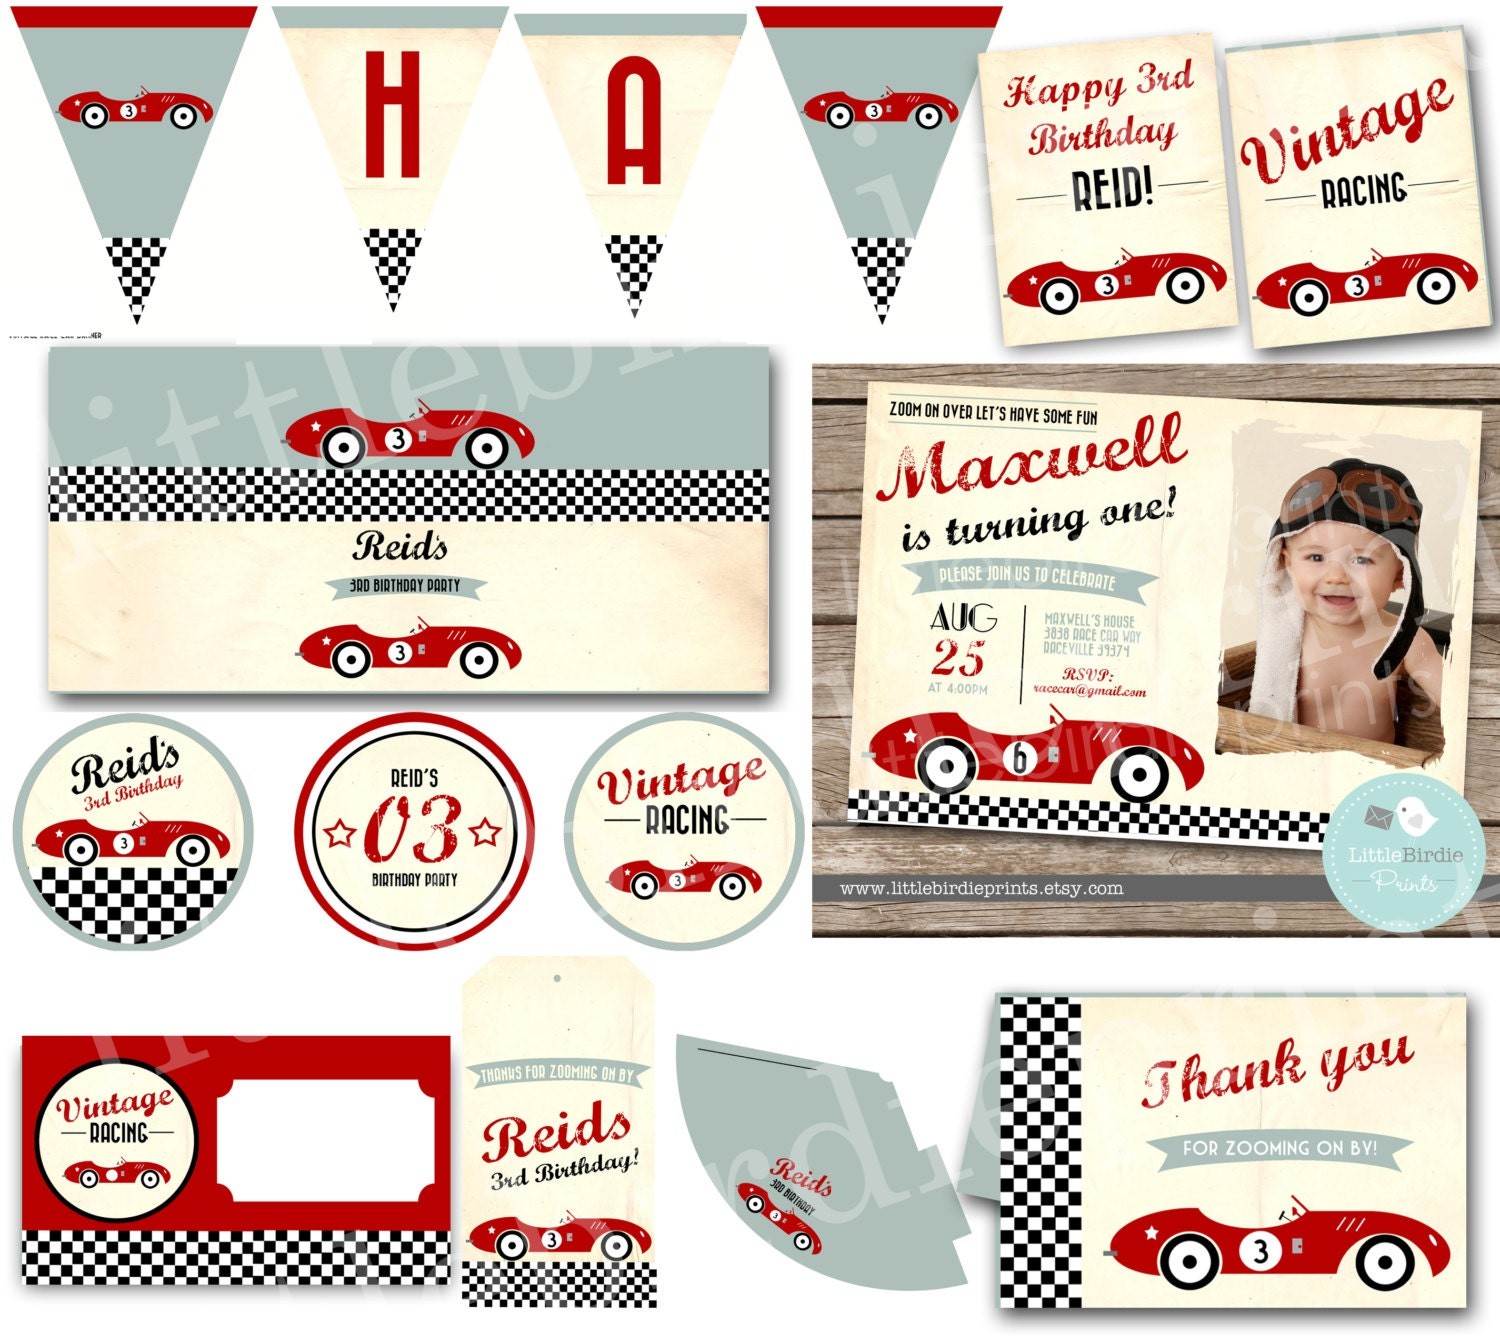 VINTAGE RACE CAR Invitation Birthday Party Classic Car Retro